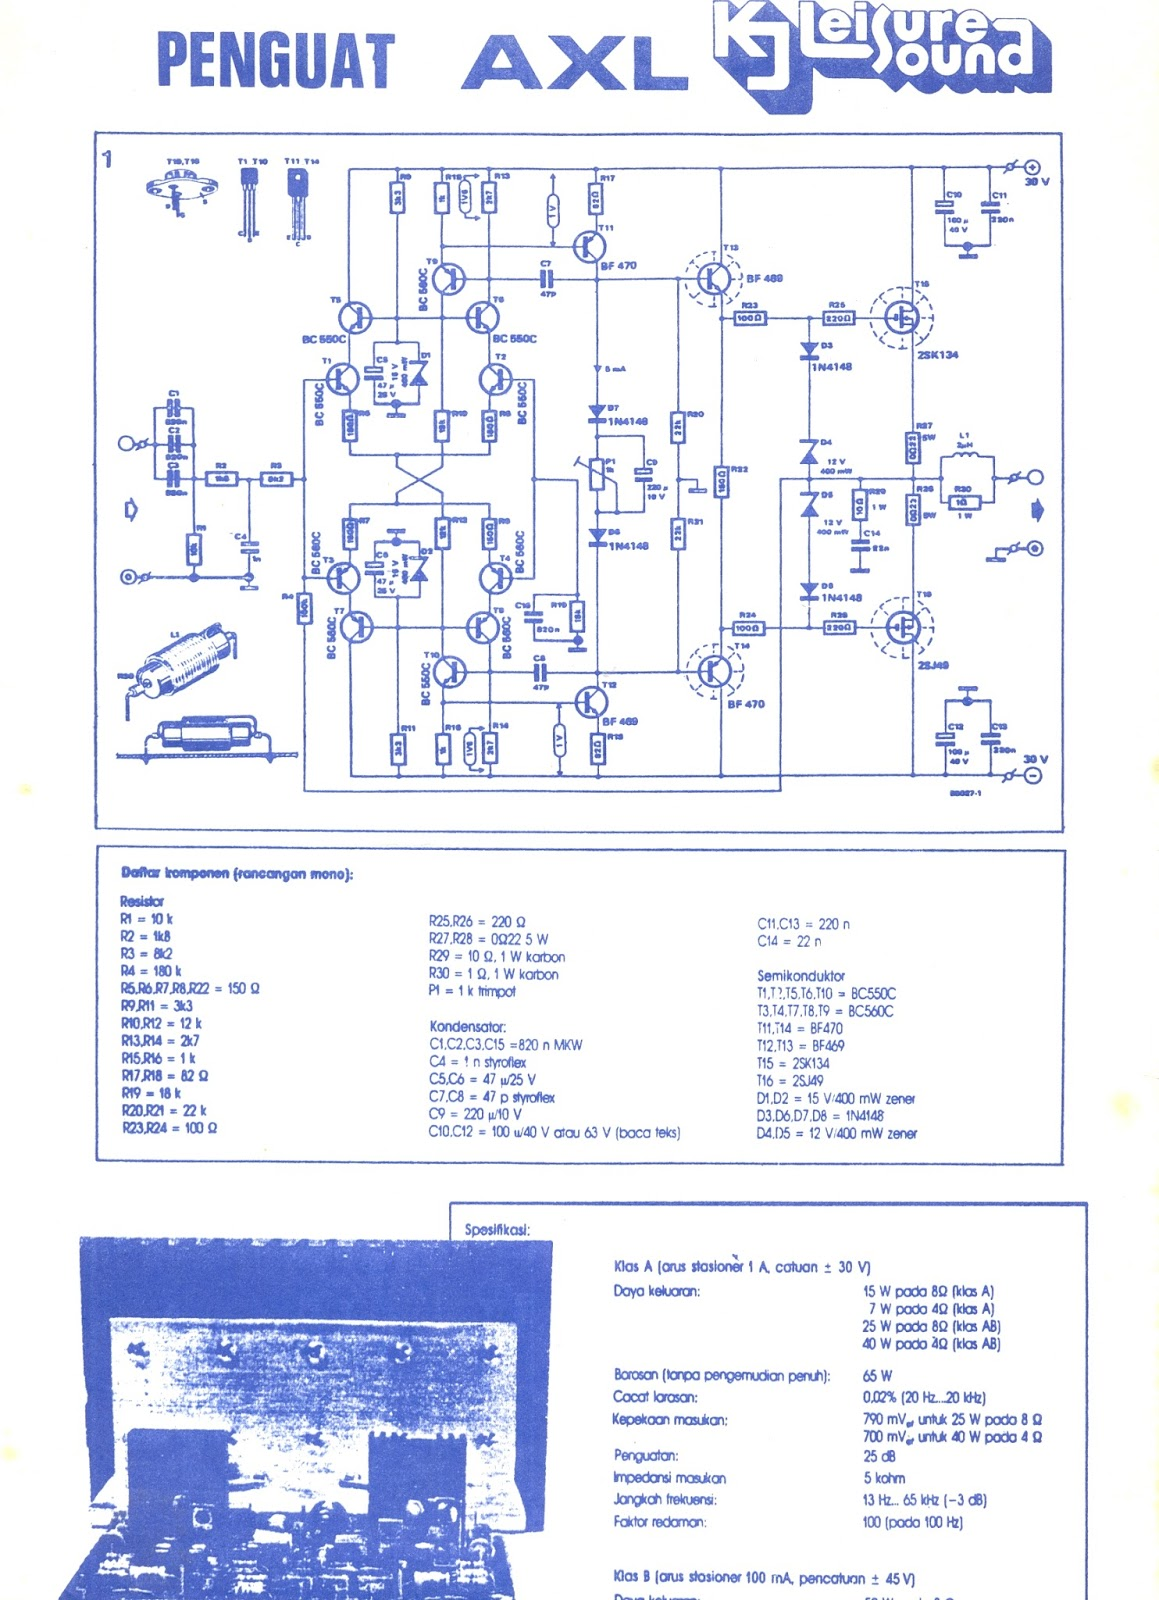 Class Ab Amplifier Skema My Colections T 60 Watts Audio Circuit Using Tda7296 Next Schematic Is A Fully Bridge Ive Made One But It Fail To Sing I Believe There Problem On The Board Itself